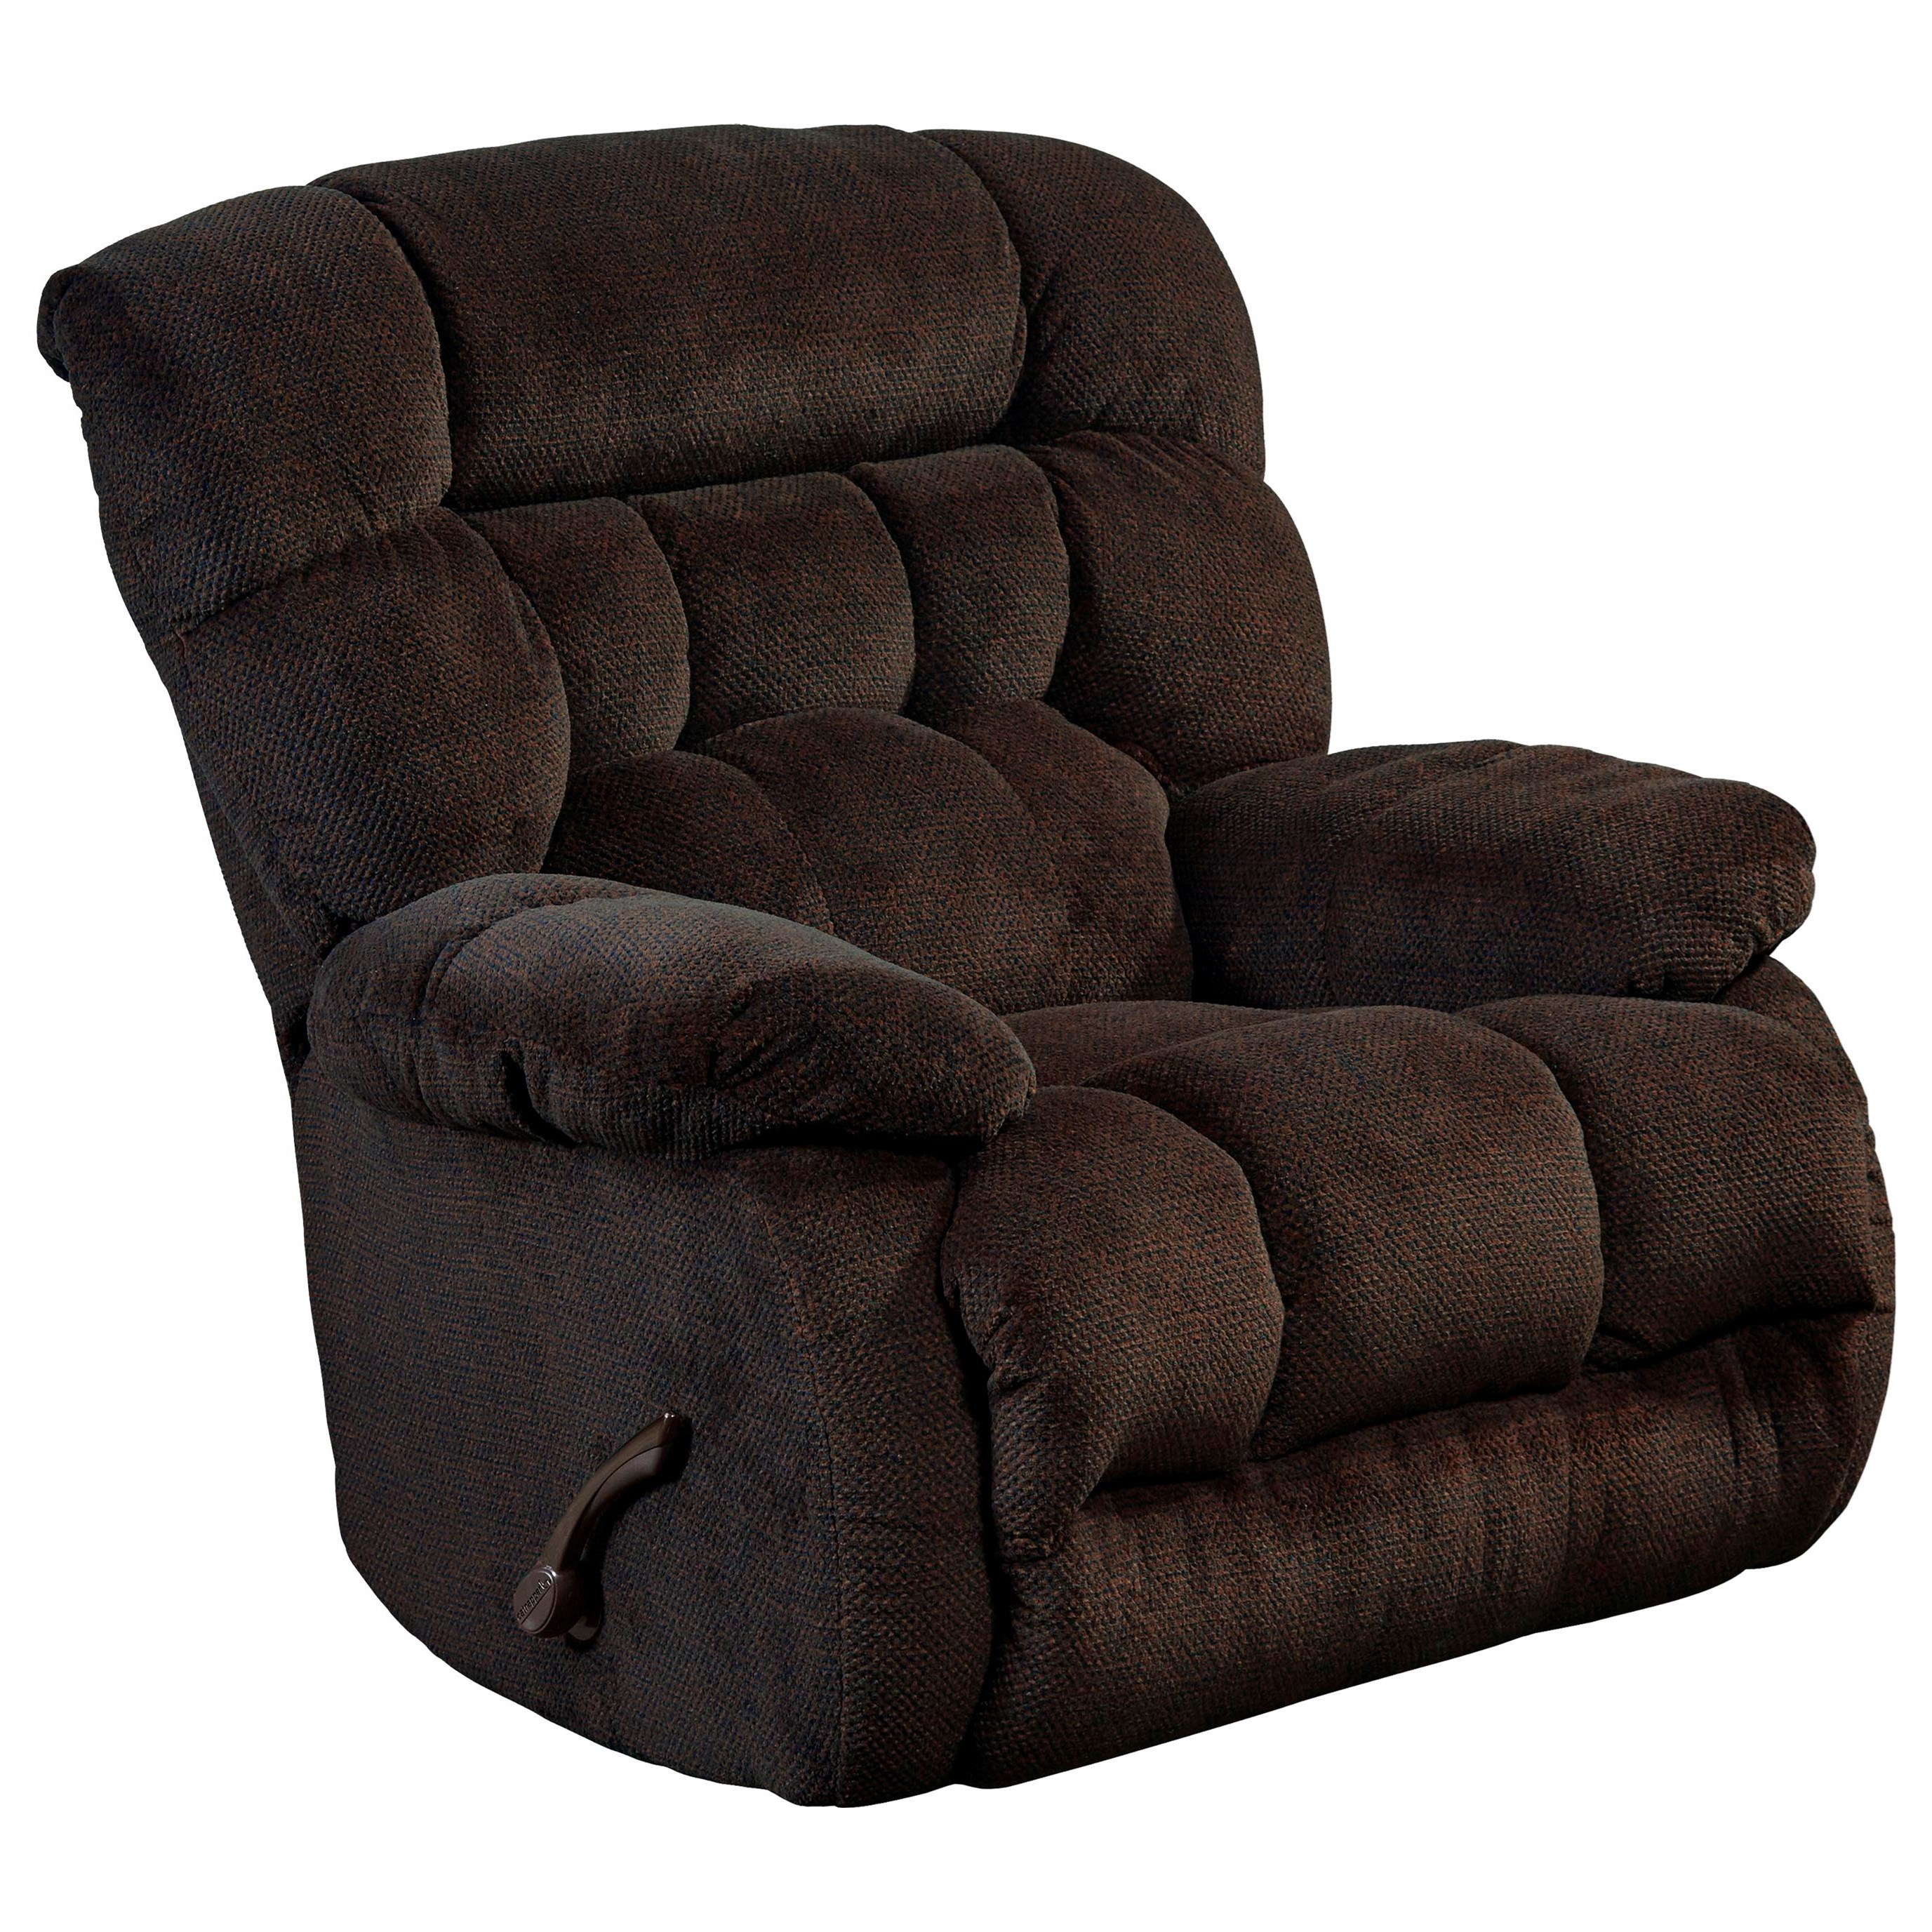 lay flat recliner chairs swivel chair walmart catnapper motion and recliners daly power